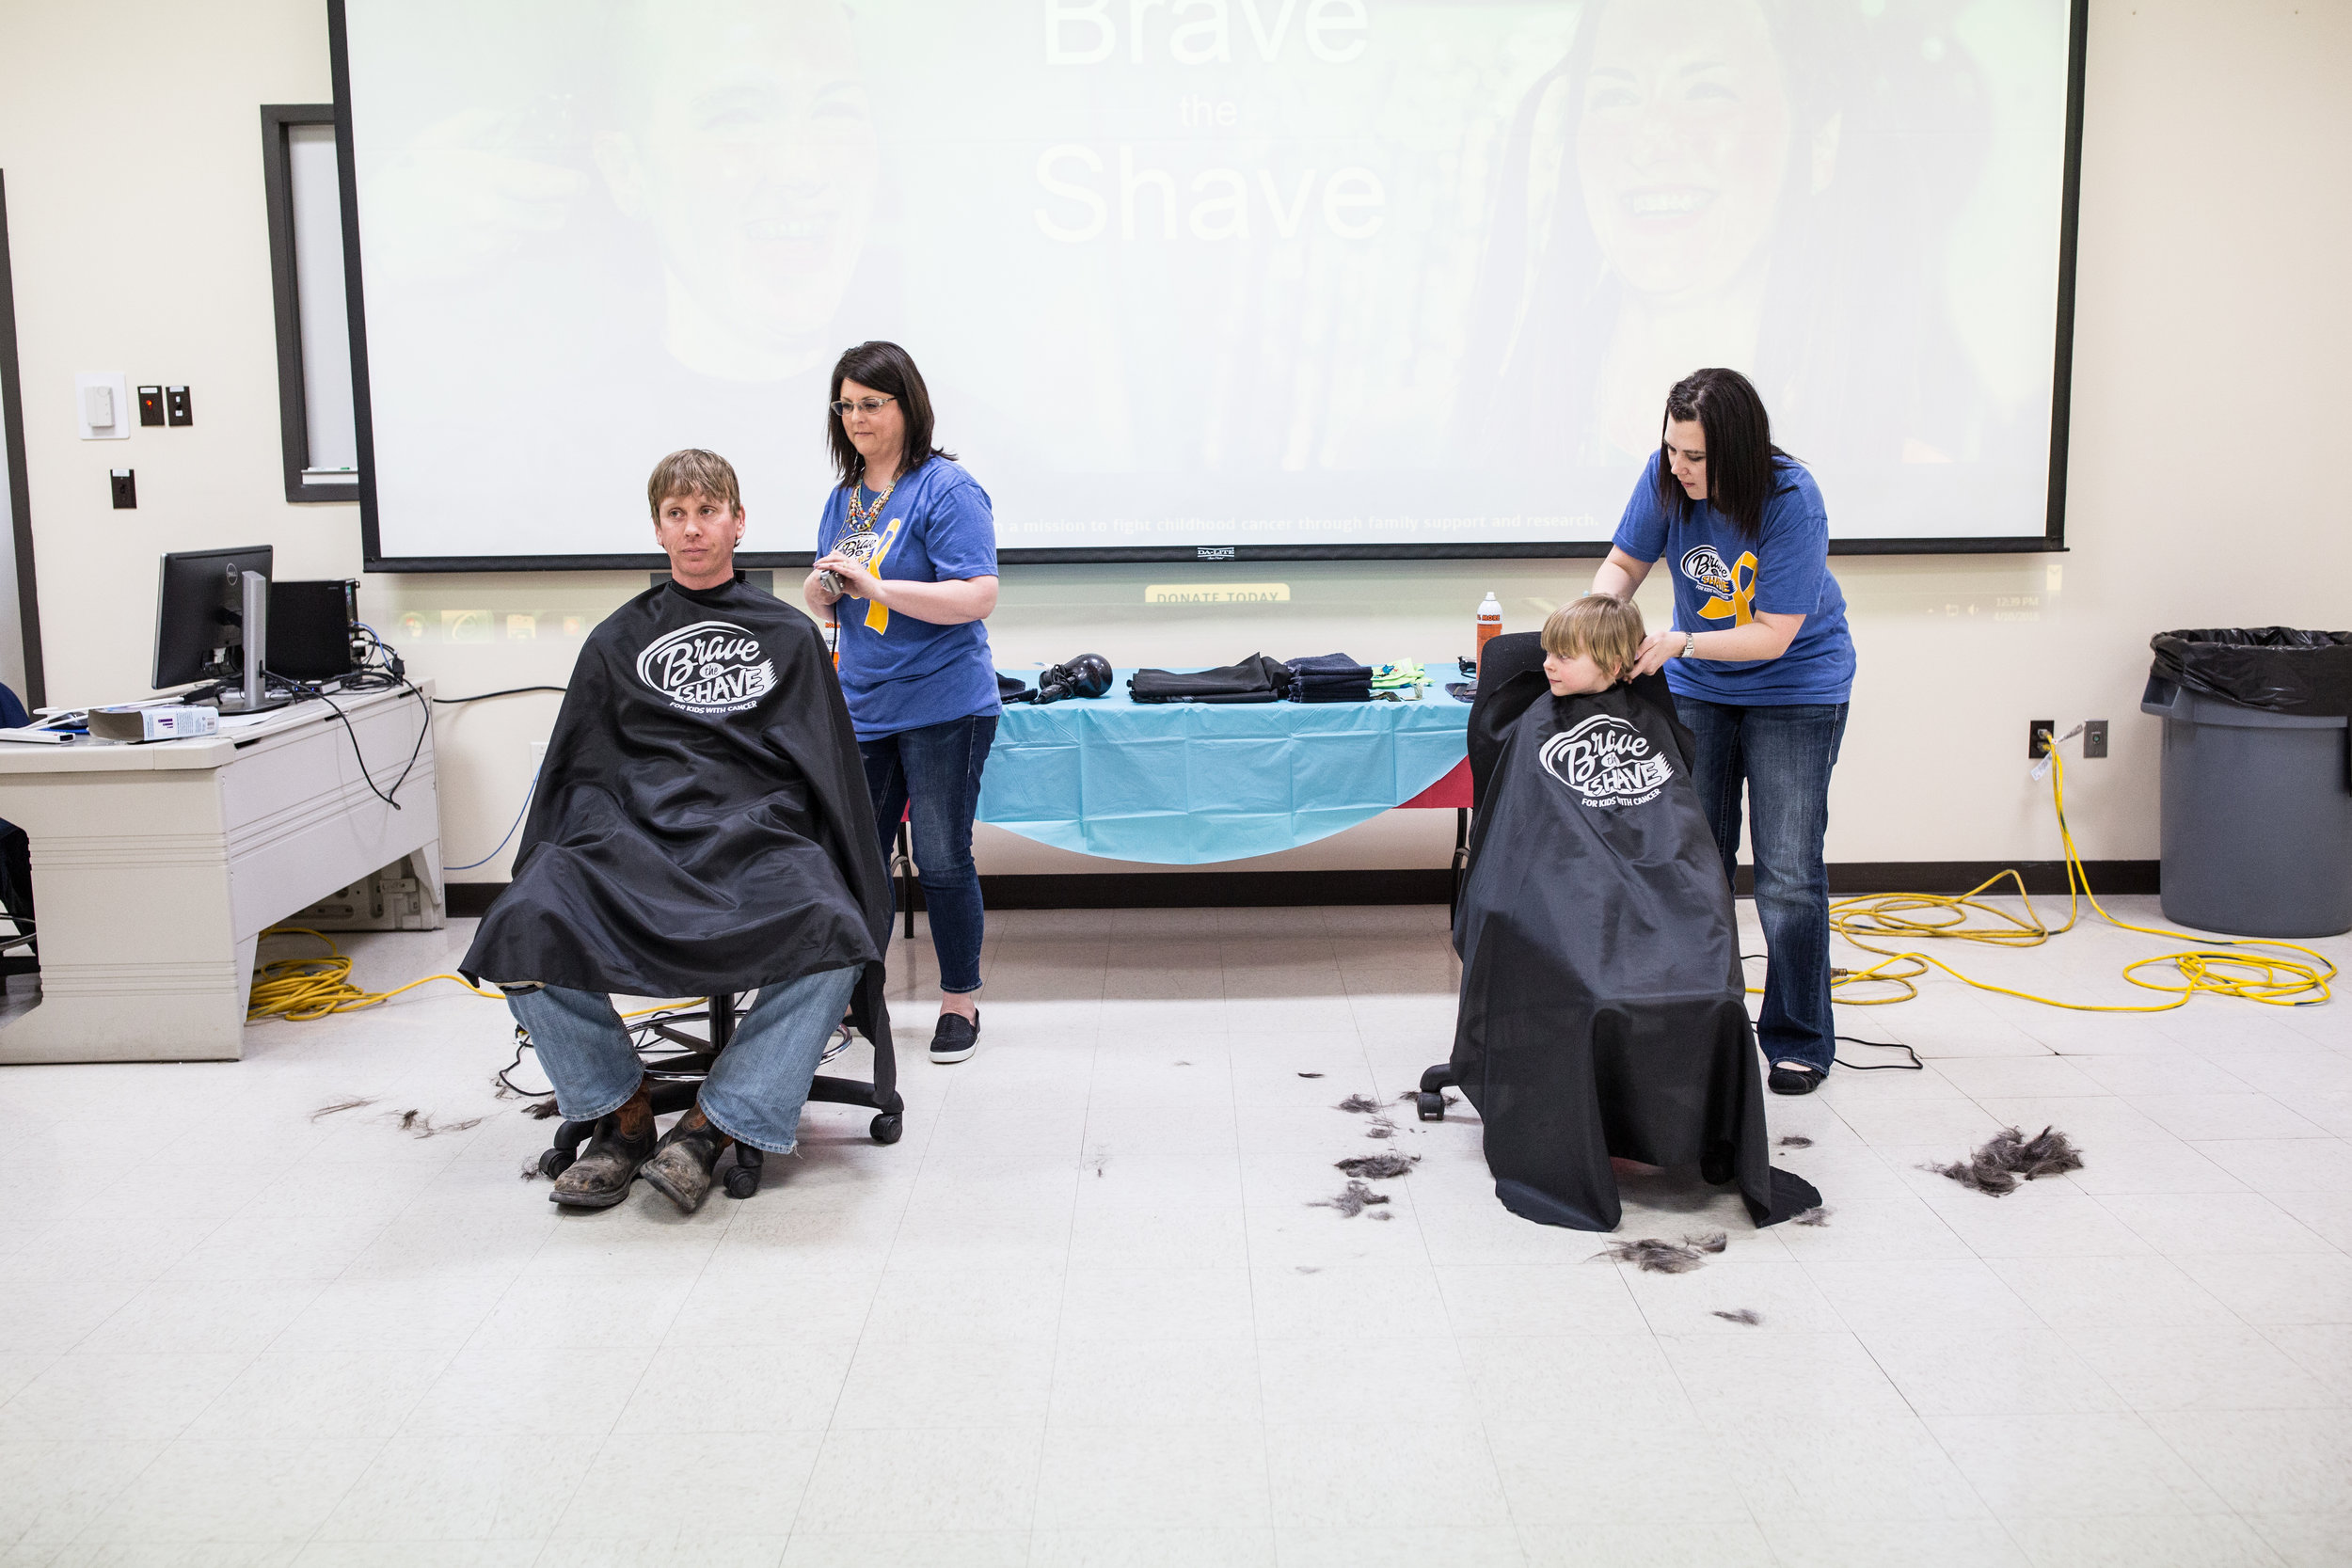 20180410 Brave The Shave32.JPG